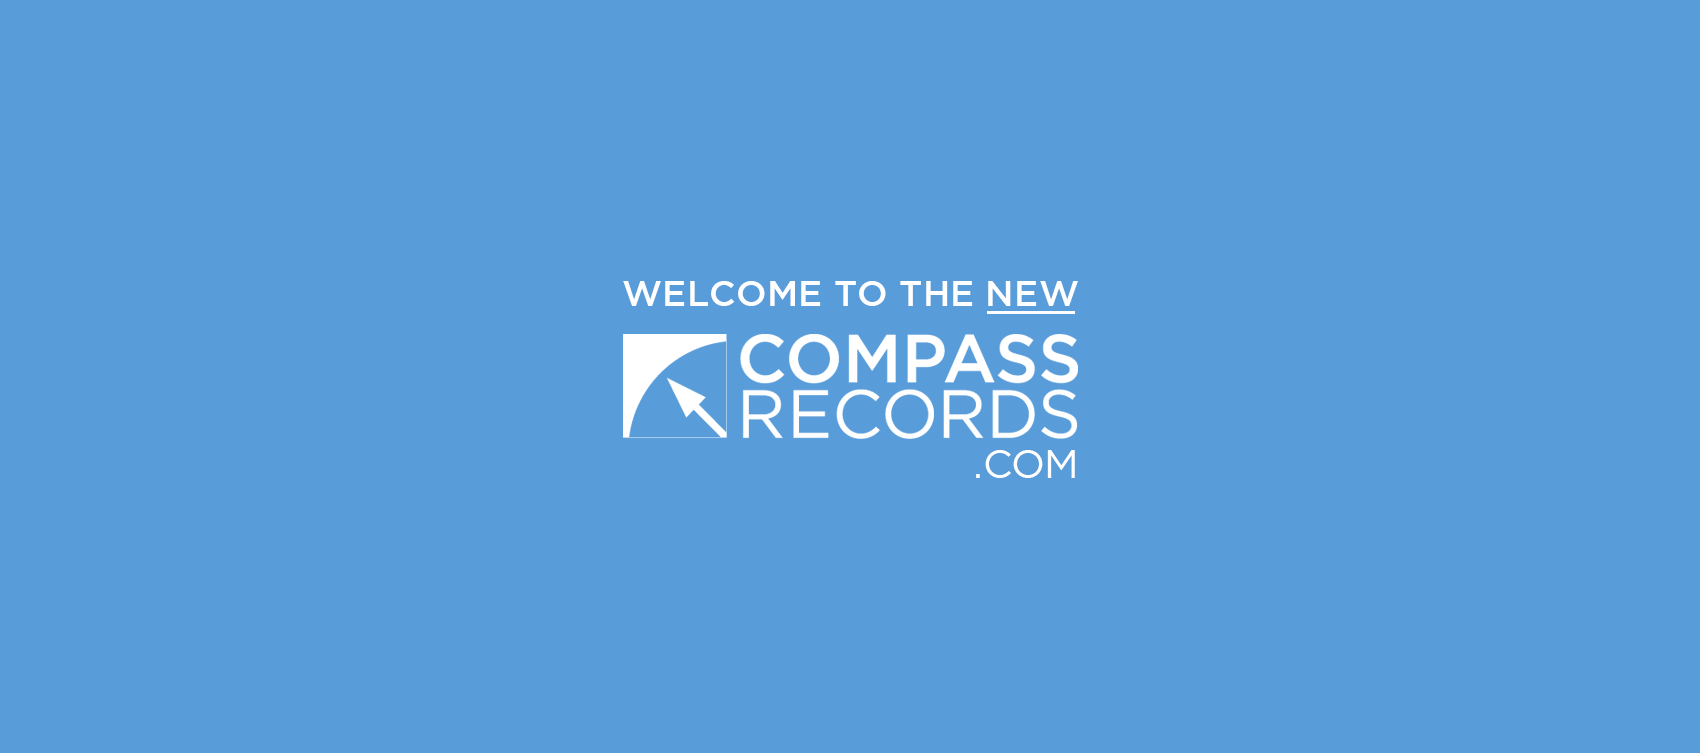 Tours - Compass Records